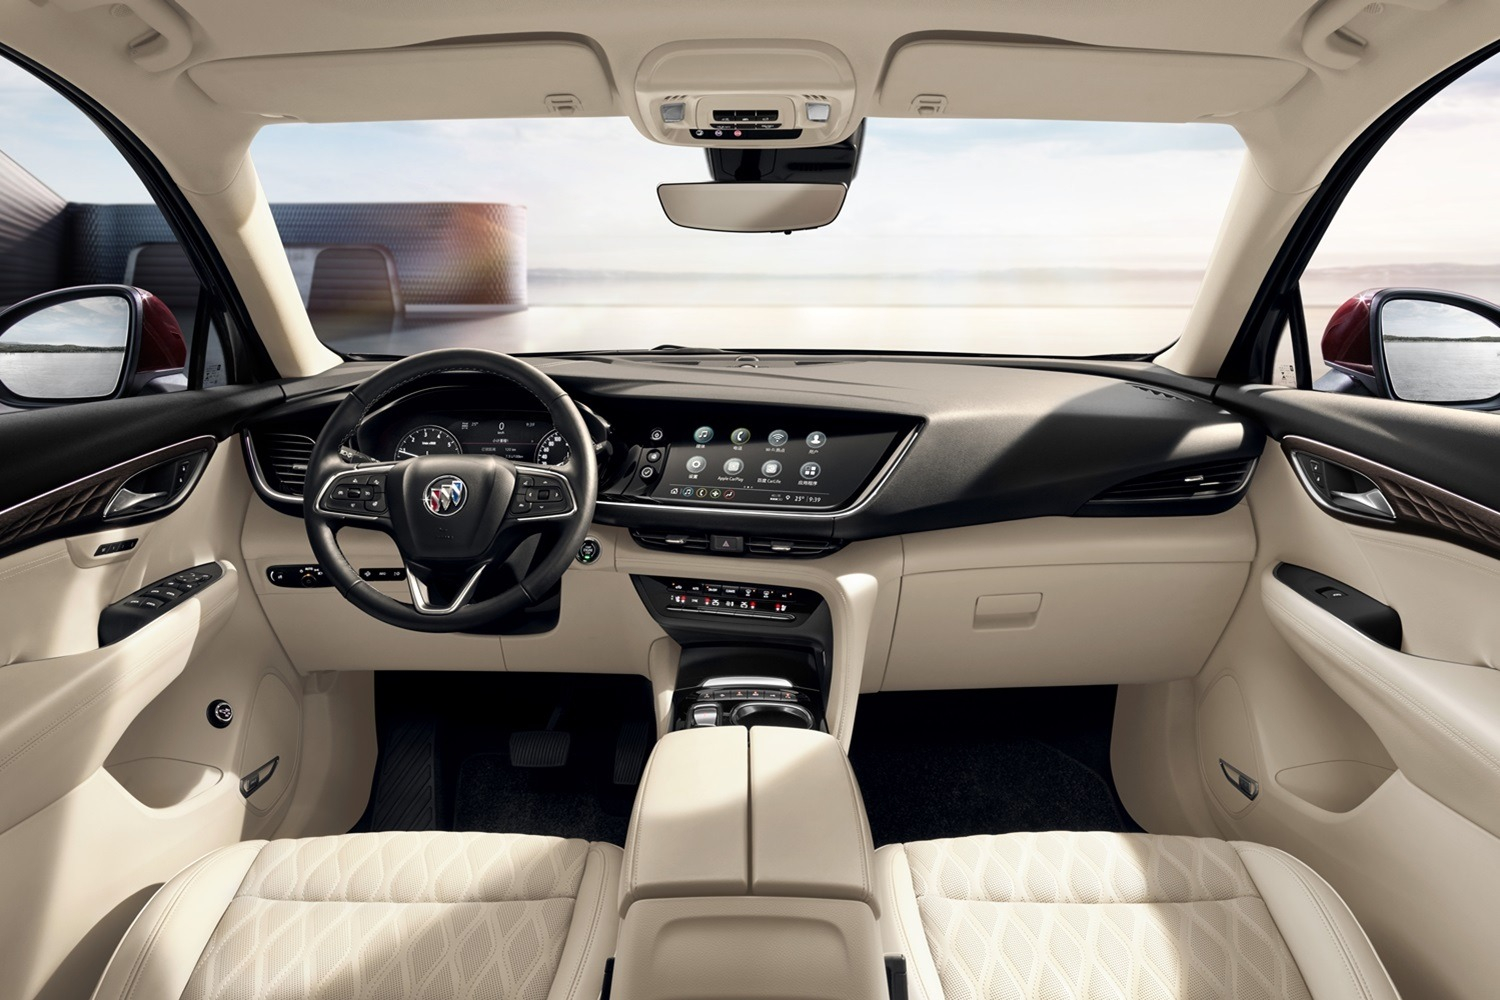 2021 Buick Envision Interior Revealed In Brand New Photos 2021 Buick Cascada Price, Reviews, Interior